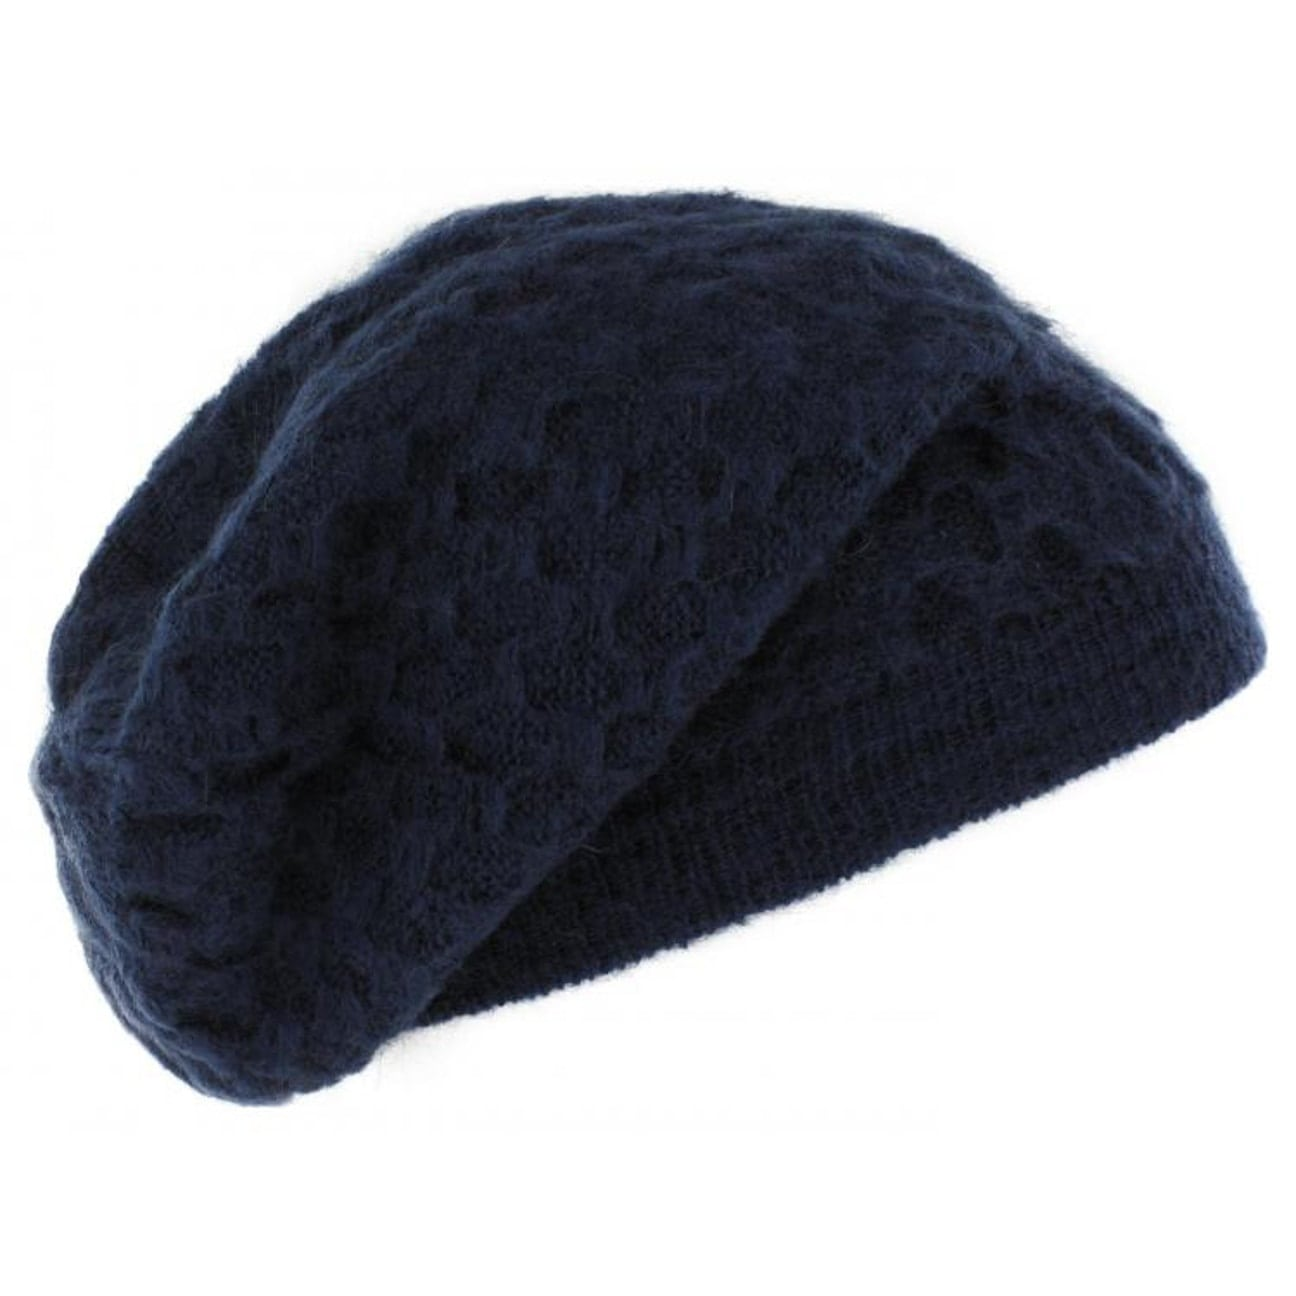 Knitting Pattern For Mohair Hat : Niokolo Mohair Knit Hat by McBURN, GBP 27,95 --> Hats, caps & beanies ...